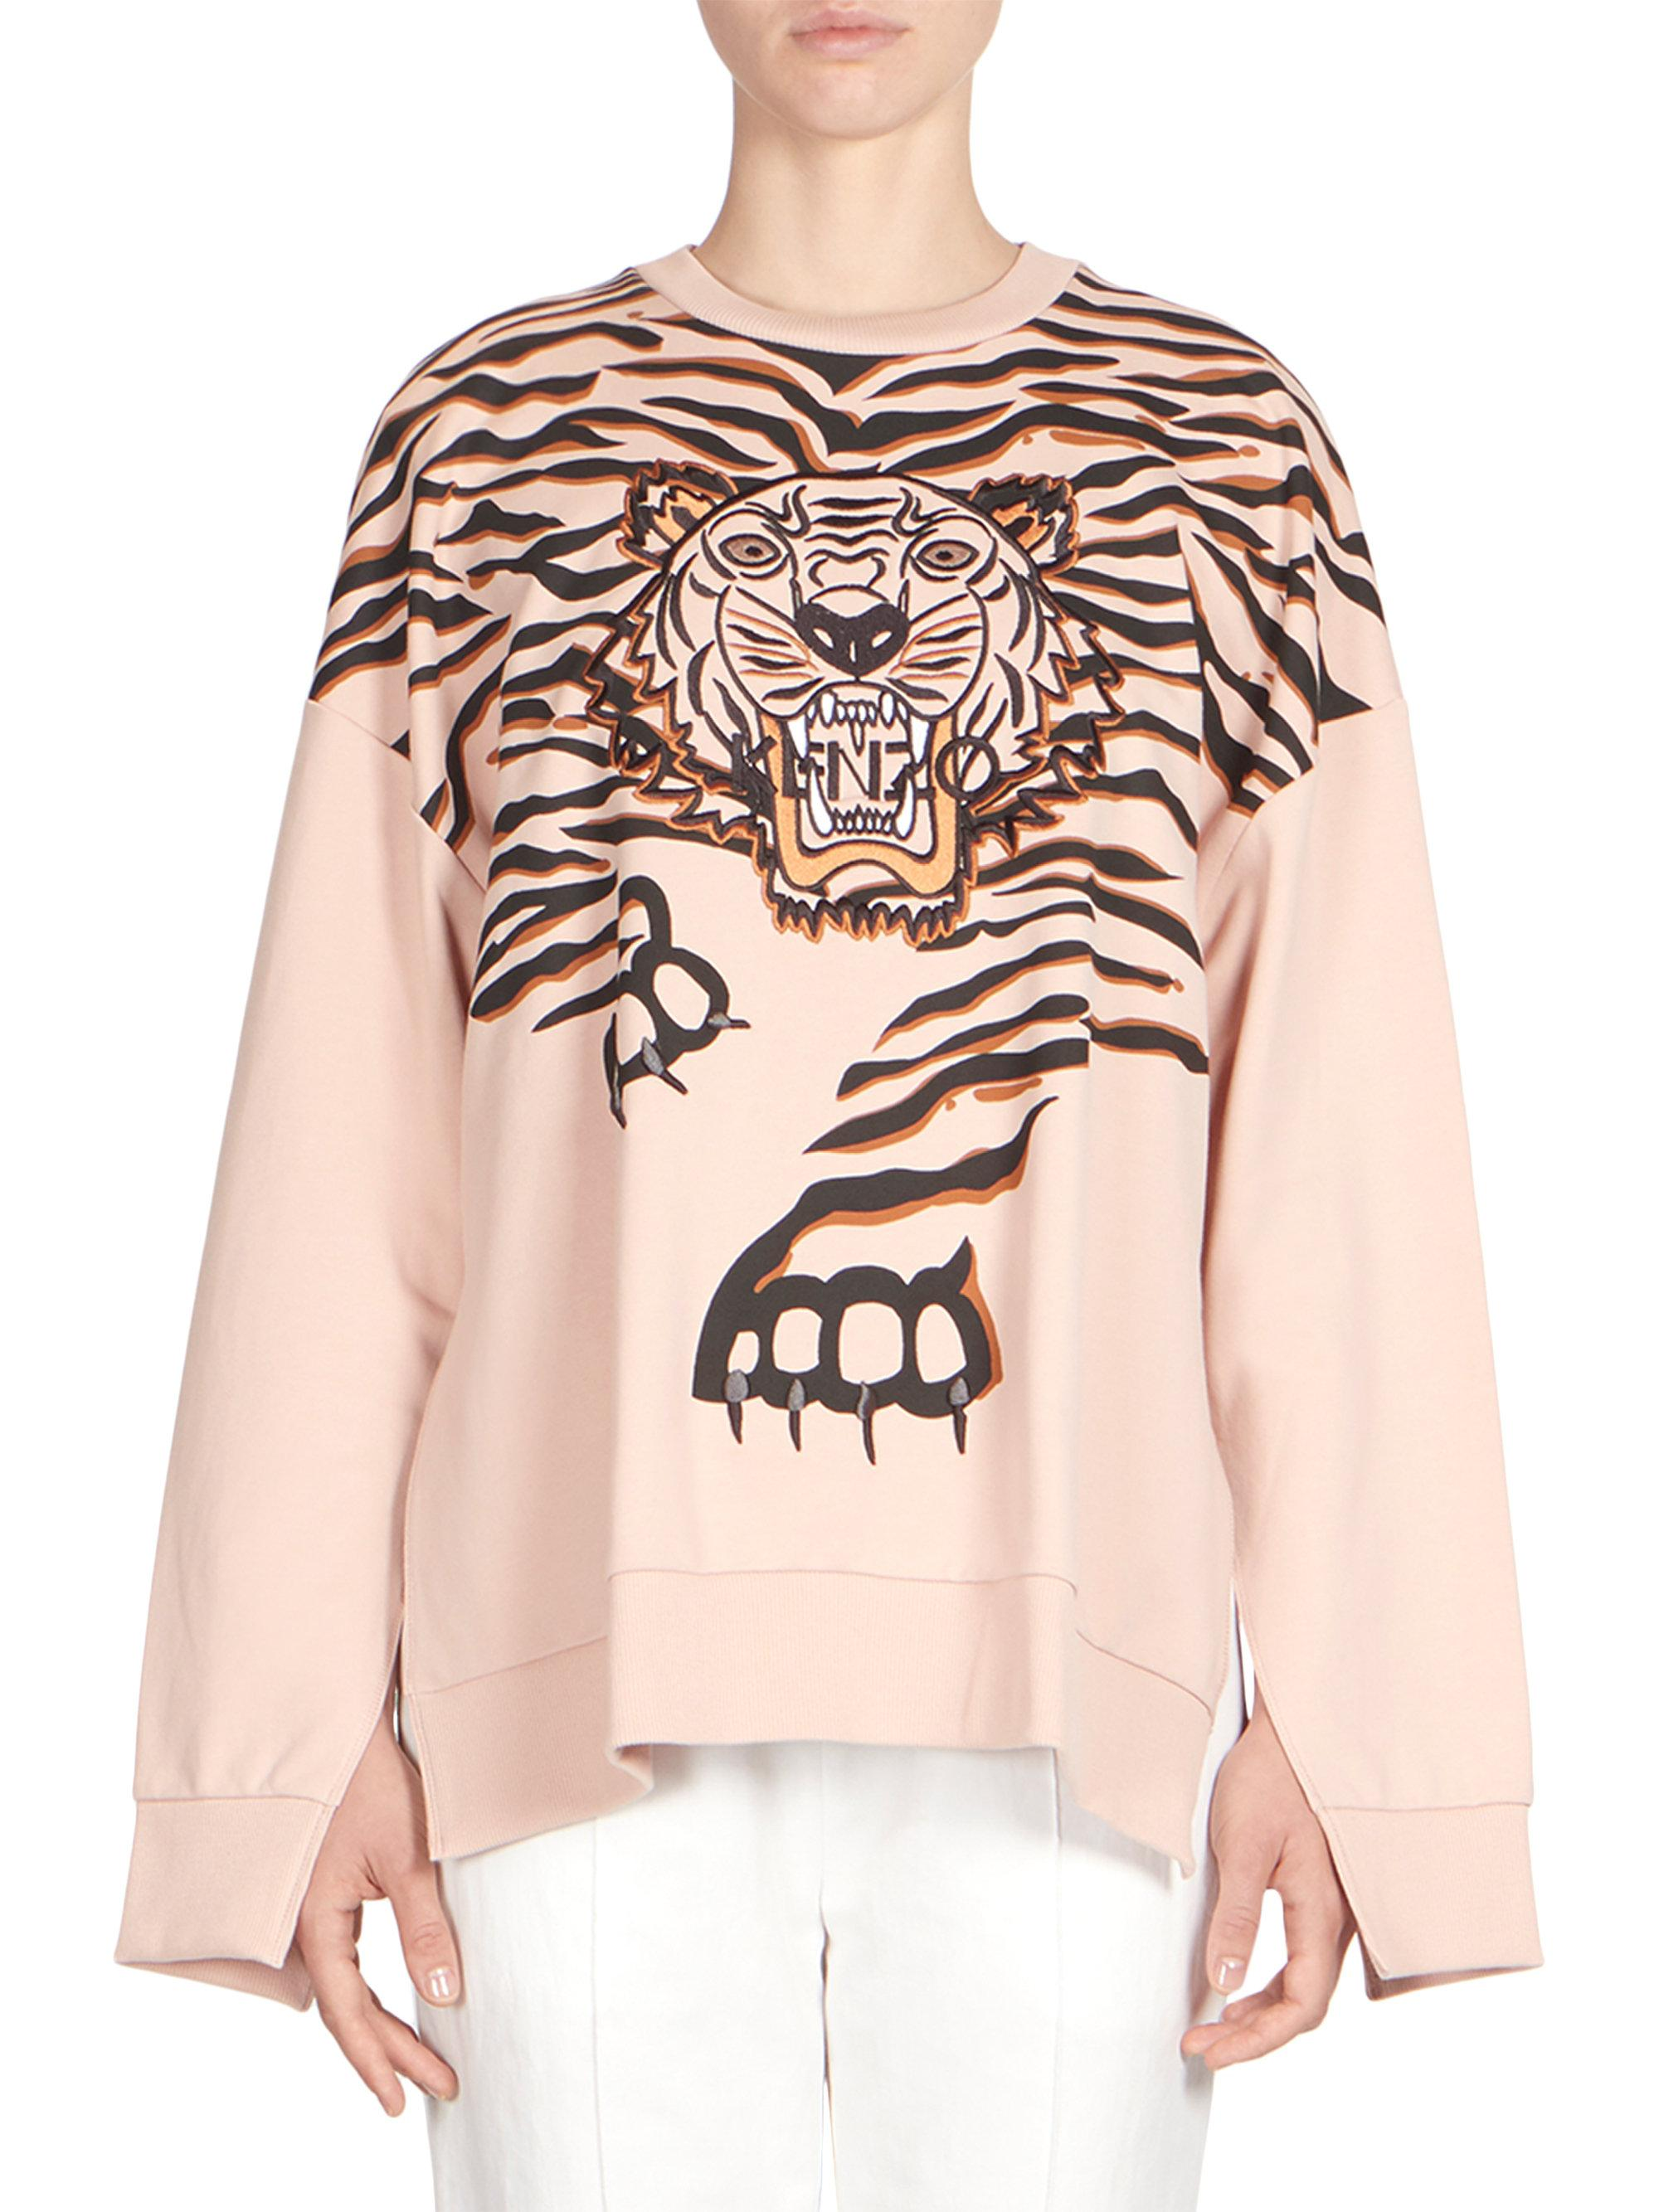 9e68a16622 Kenzo Tiger Claw Graphic Sweatshirt in Pink - Lyst